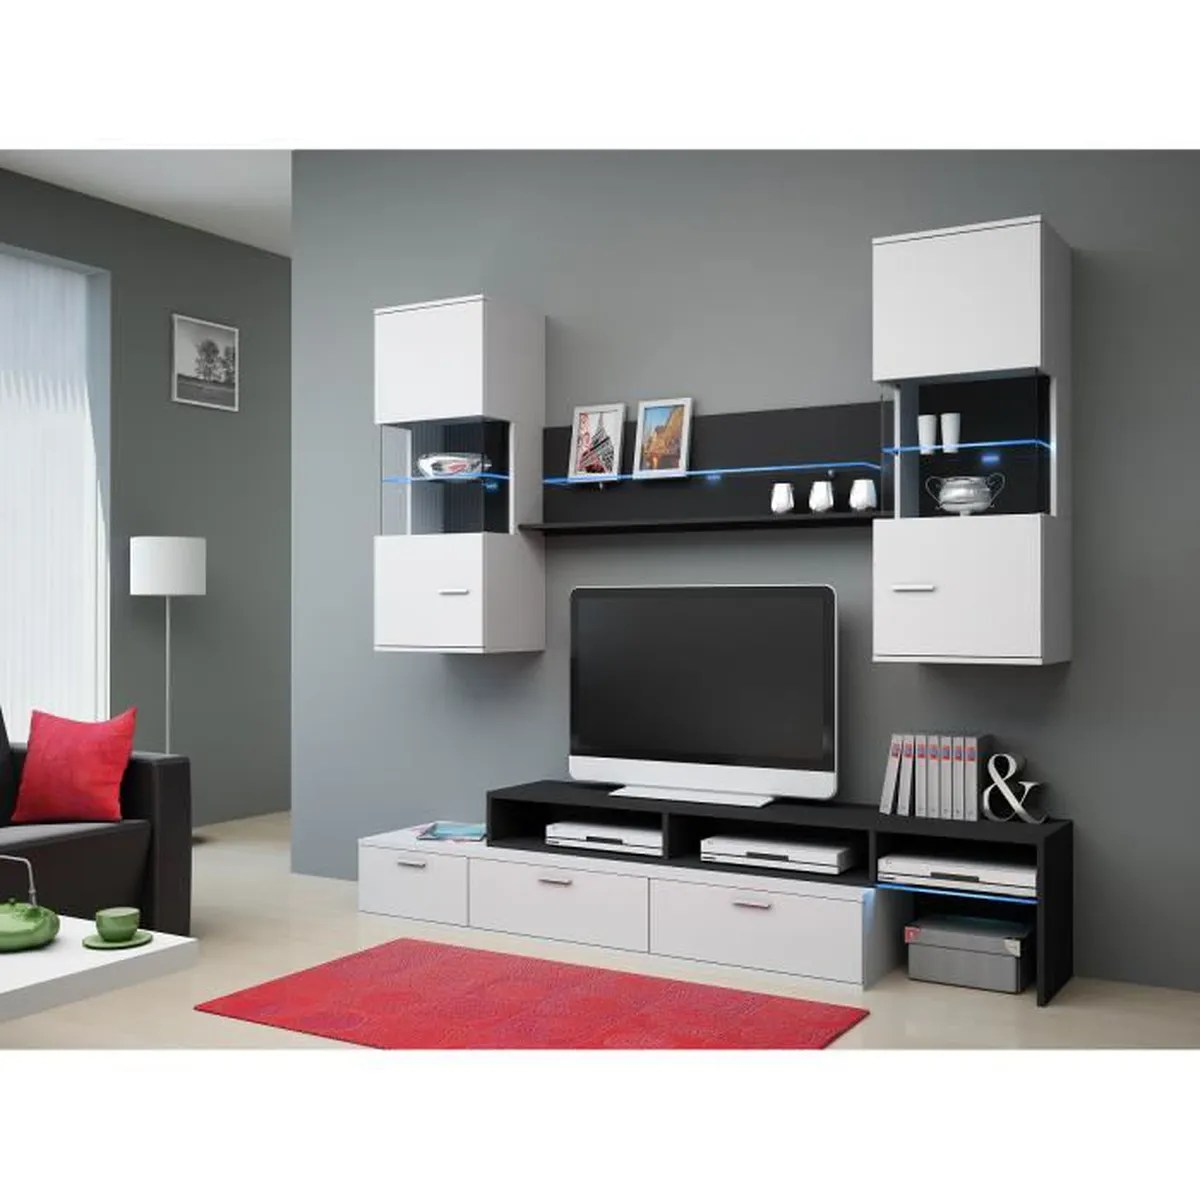 Cdiscount Ensemble Meuble Tv Ensemble De Meuble Tv Moderne And Design Domingo Achat